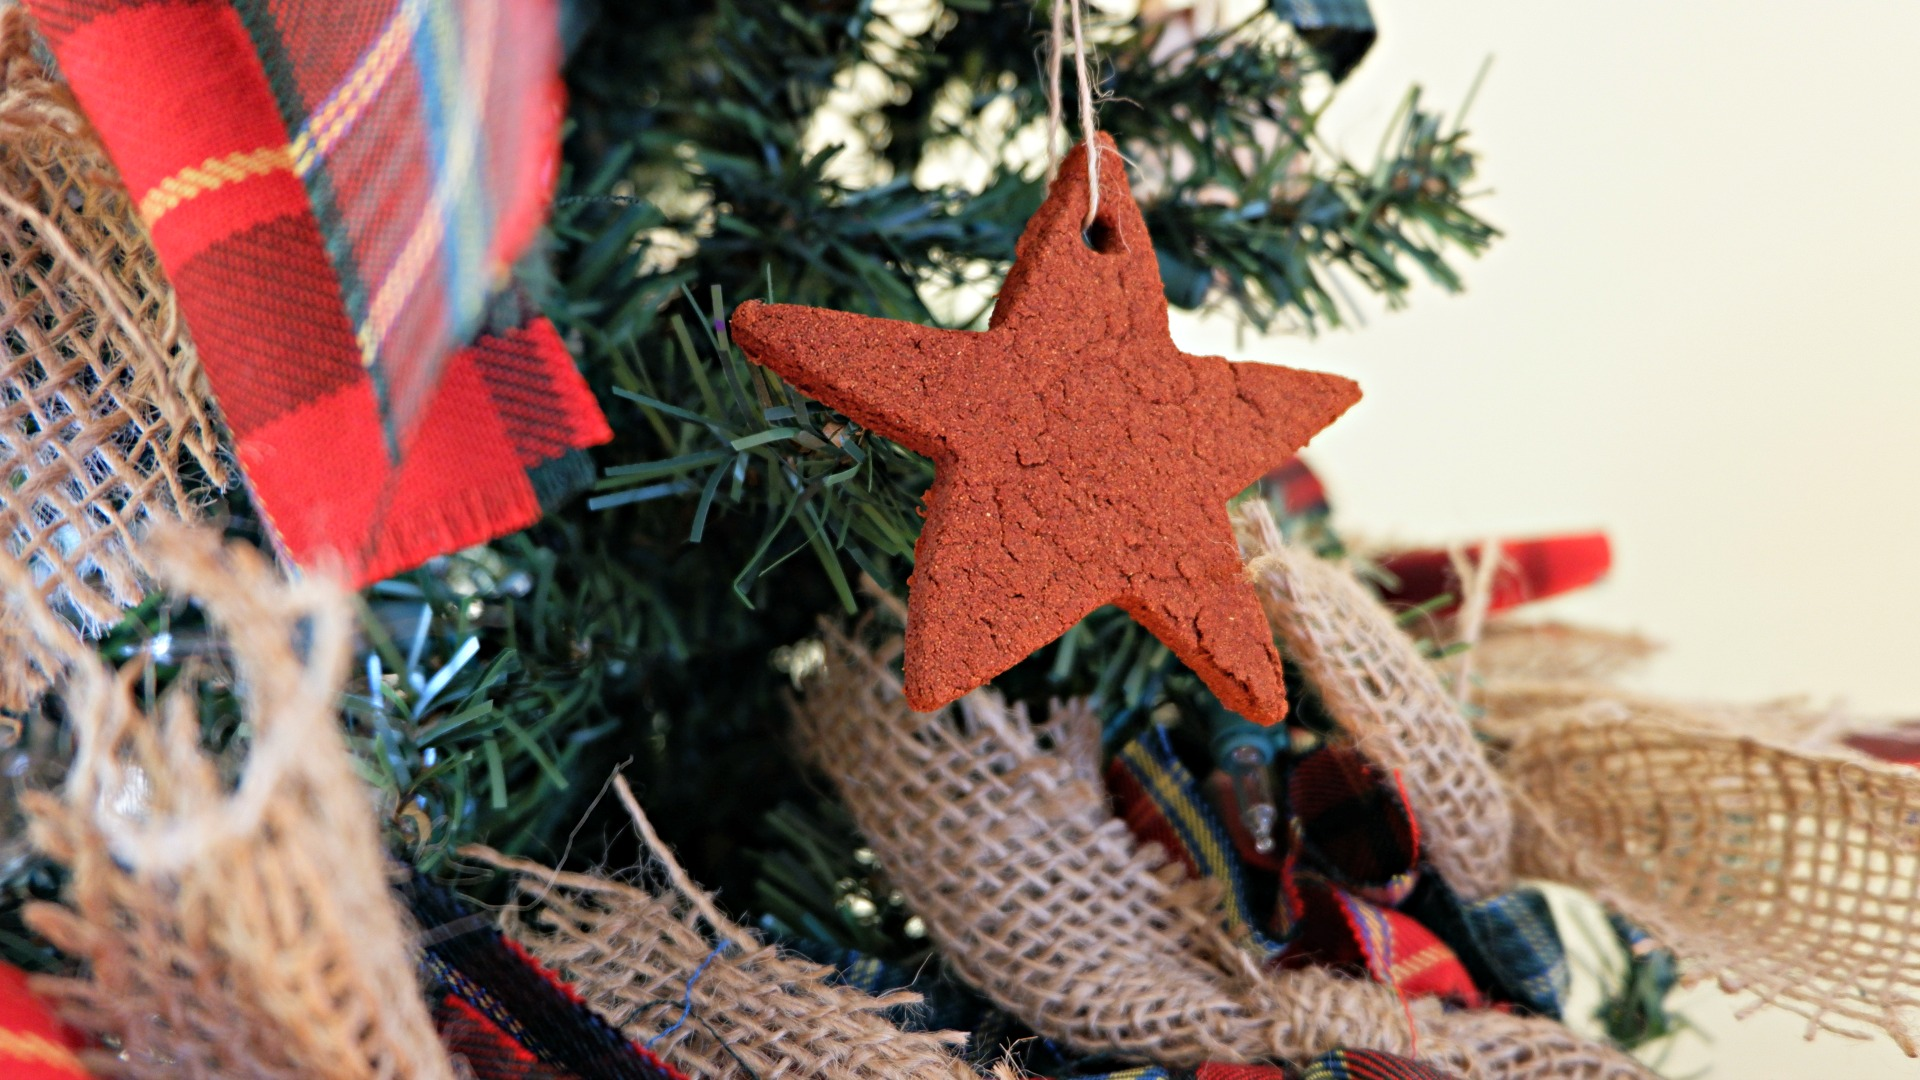 Scottish Pioneer Inspired Christmas Tree MyNBChristmasTree New Brunswick pickle planet cinnamon applesauce diy ornament